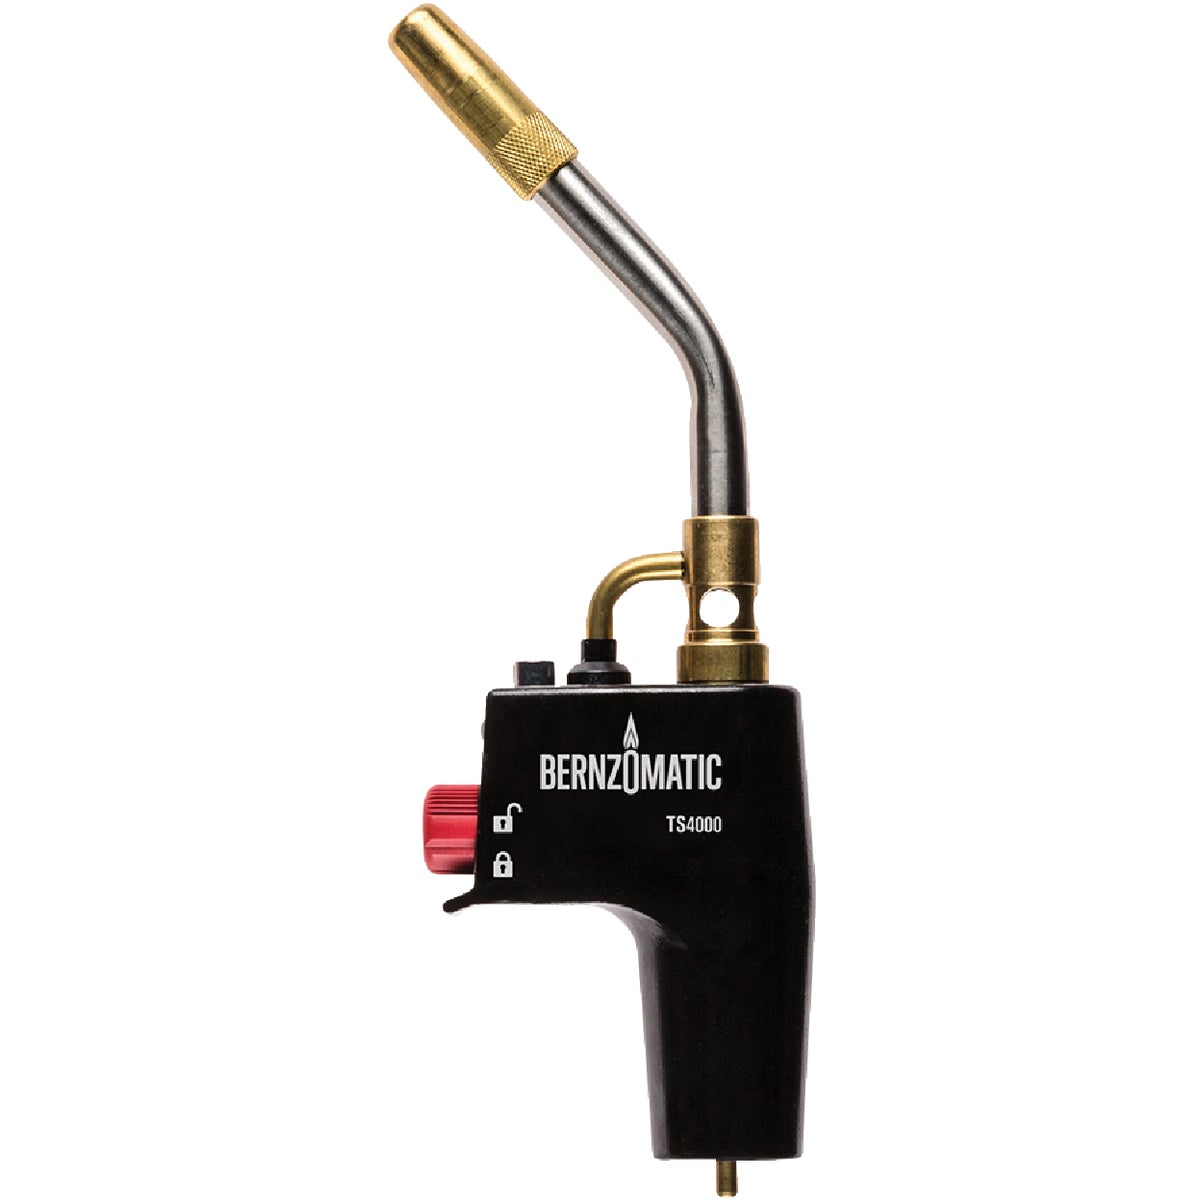 TRIGR-STRT PROPANE TORCH - TS4000T by Worthington